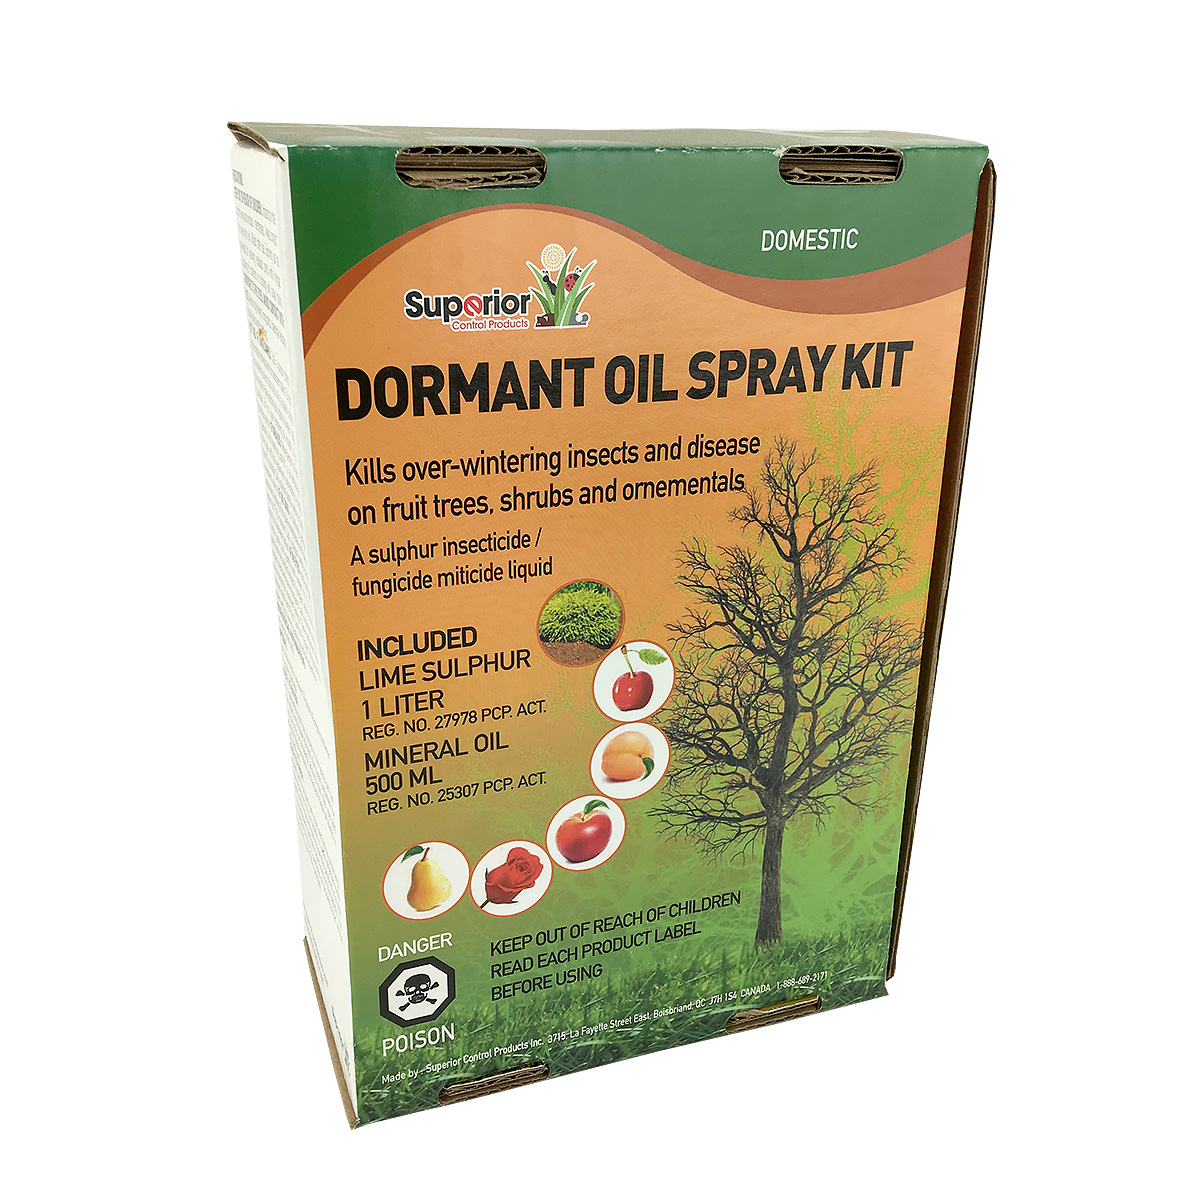 Superior Dormant Oil Spray Kit